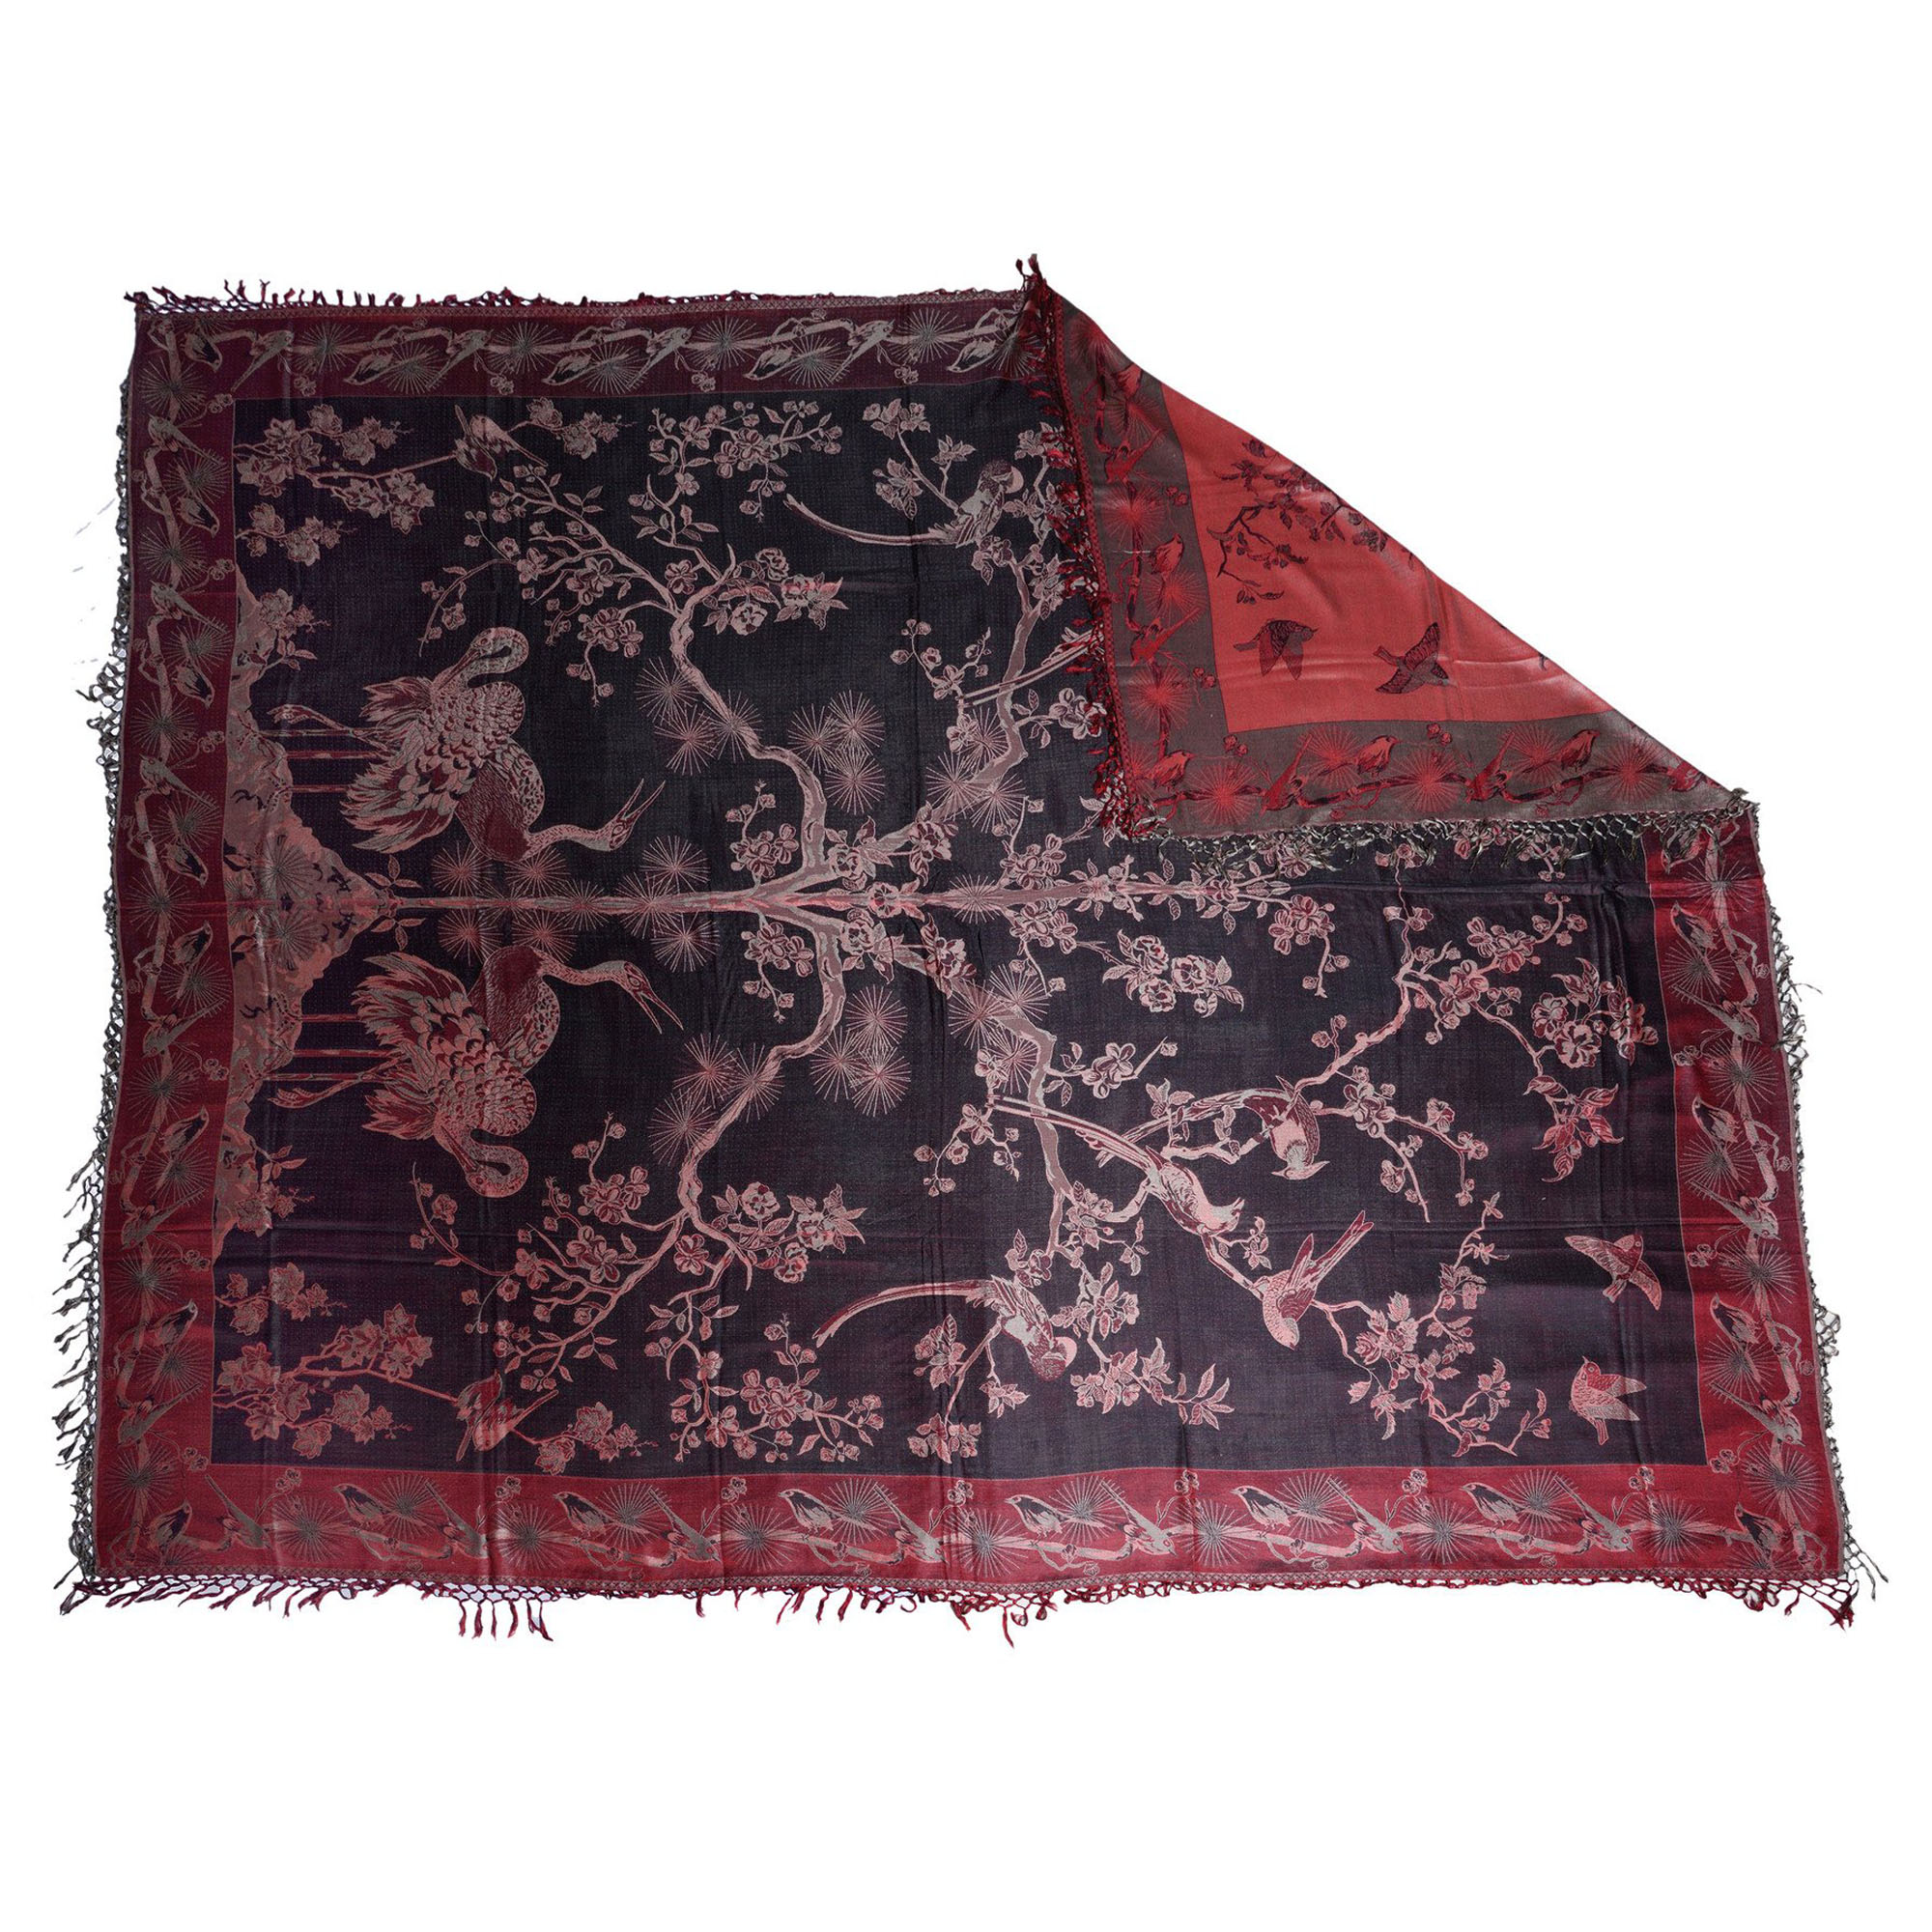 Banyan Red / Black Charming Silk Throw 2